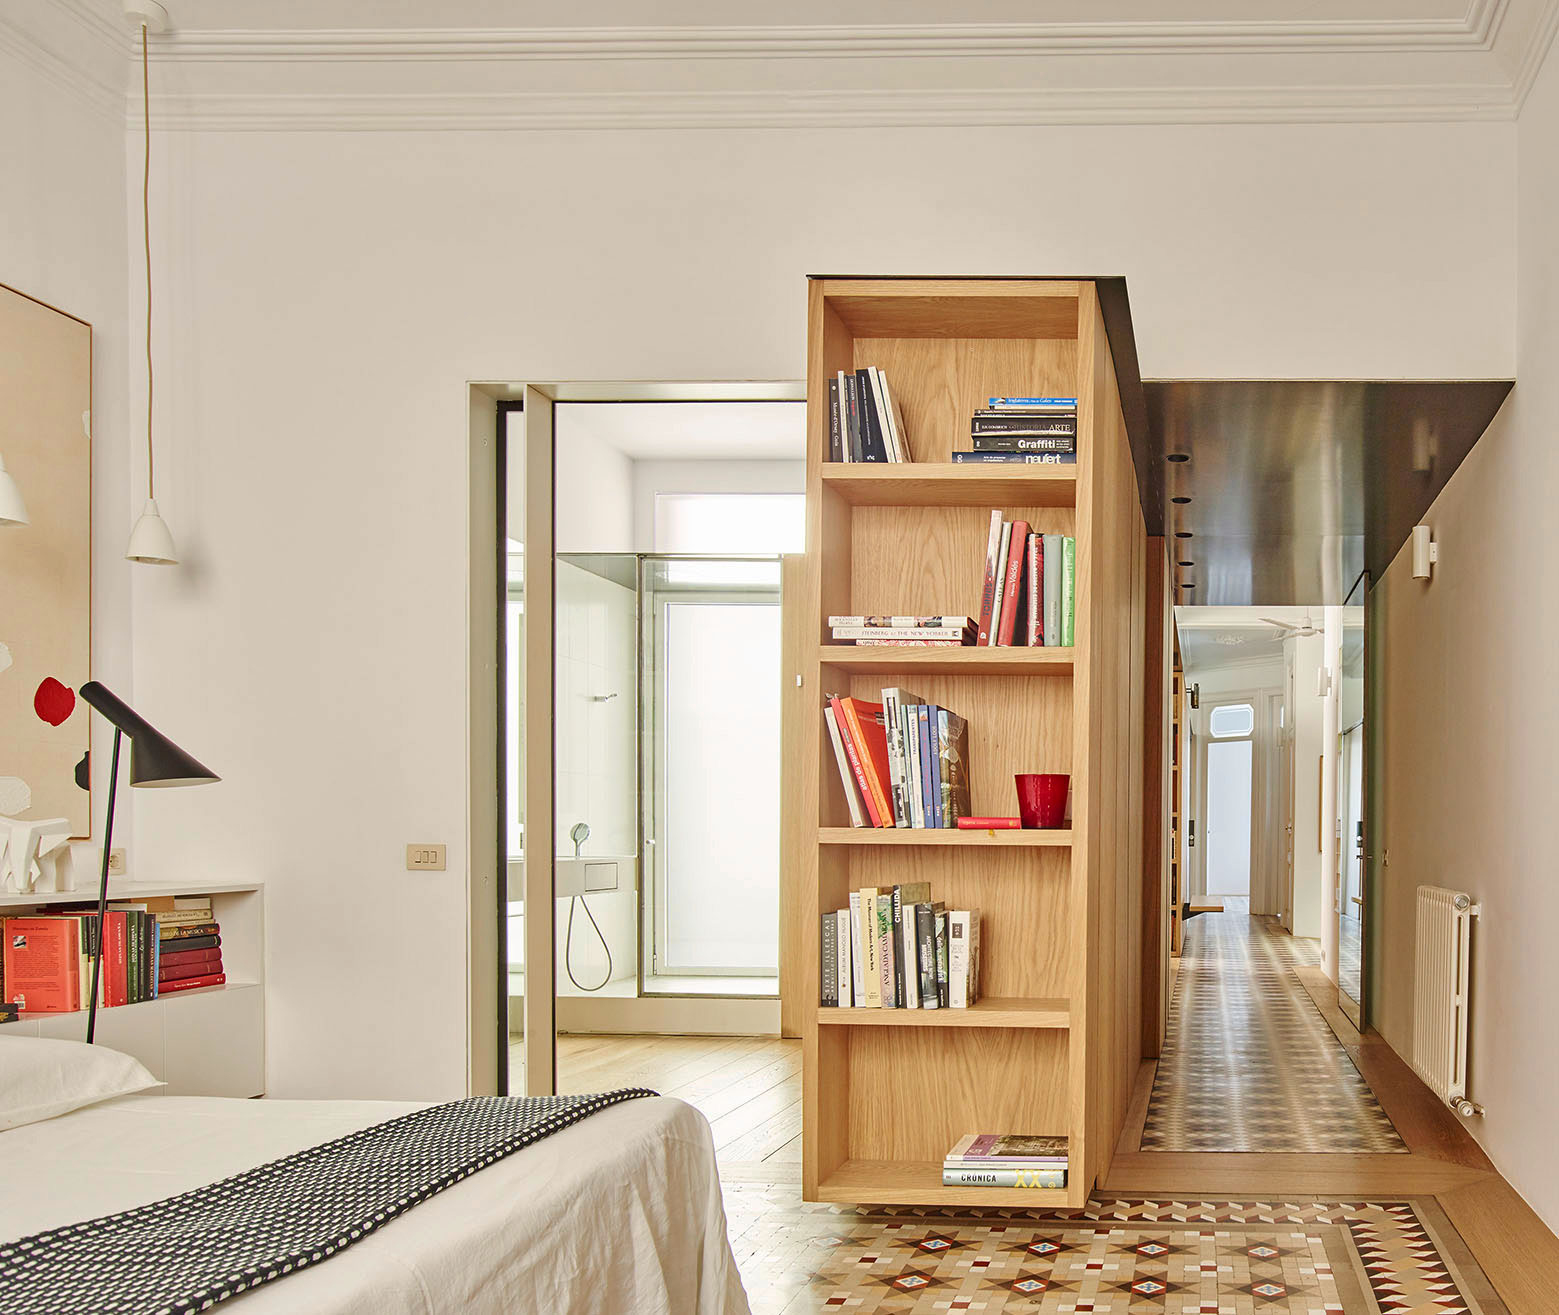 Built Architecture Designs a Stylish Apartment in Barcelona, Spain